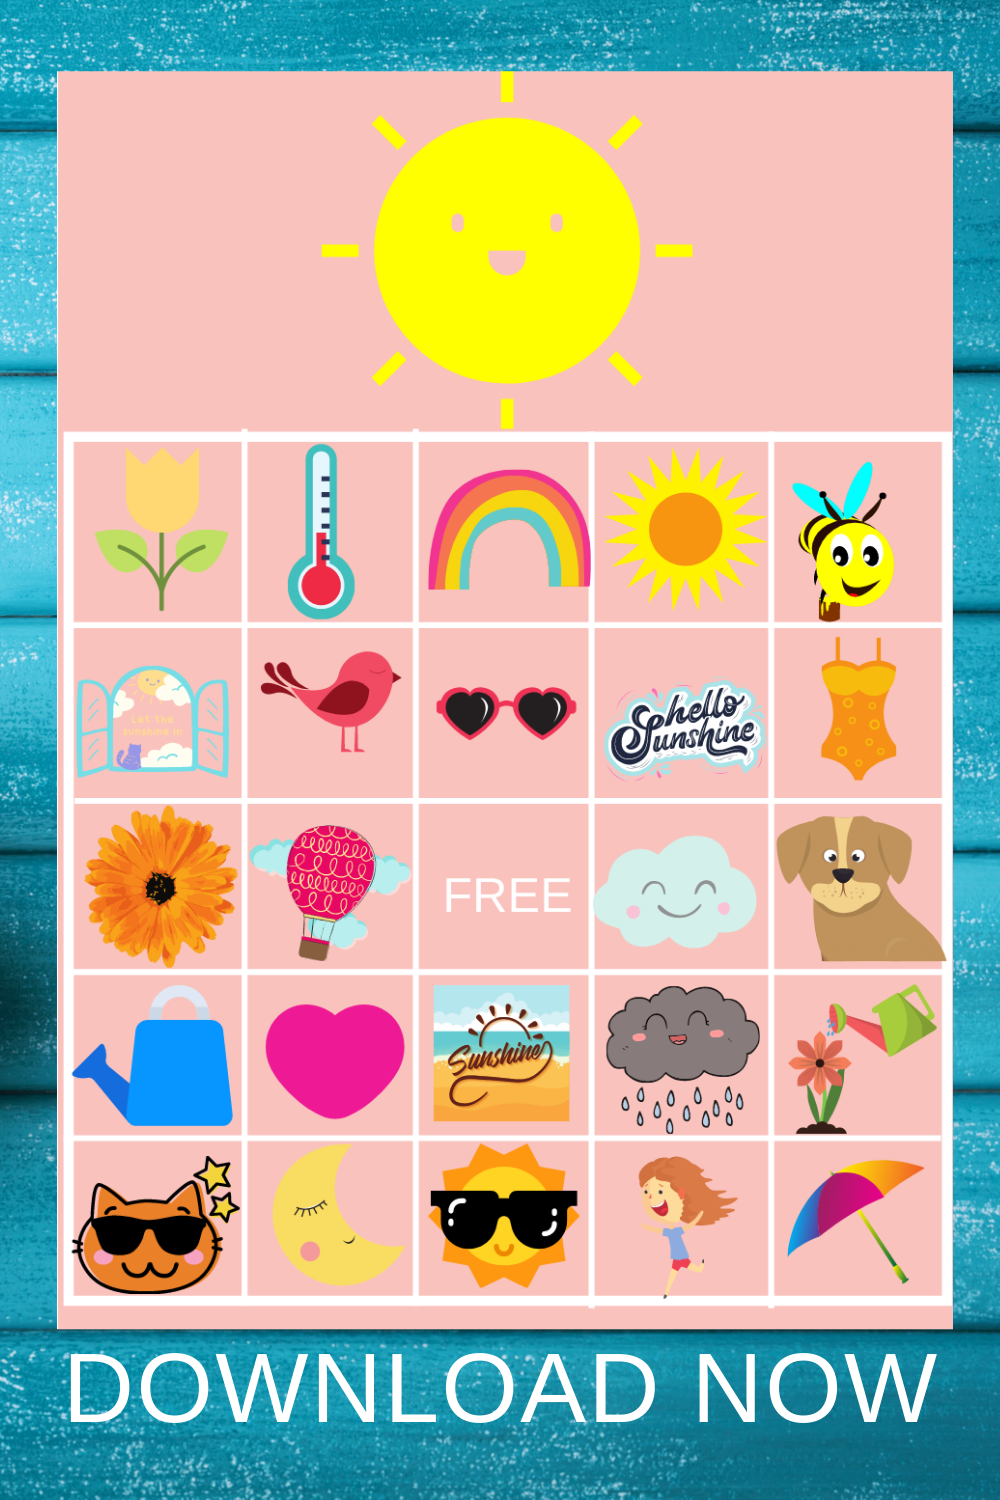 sunshine bingo game for a little girl's birthday party